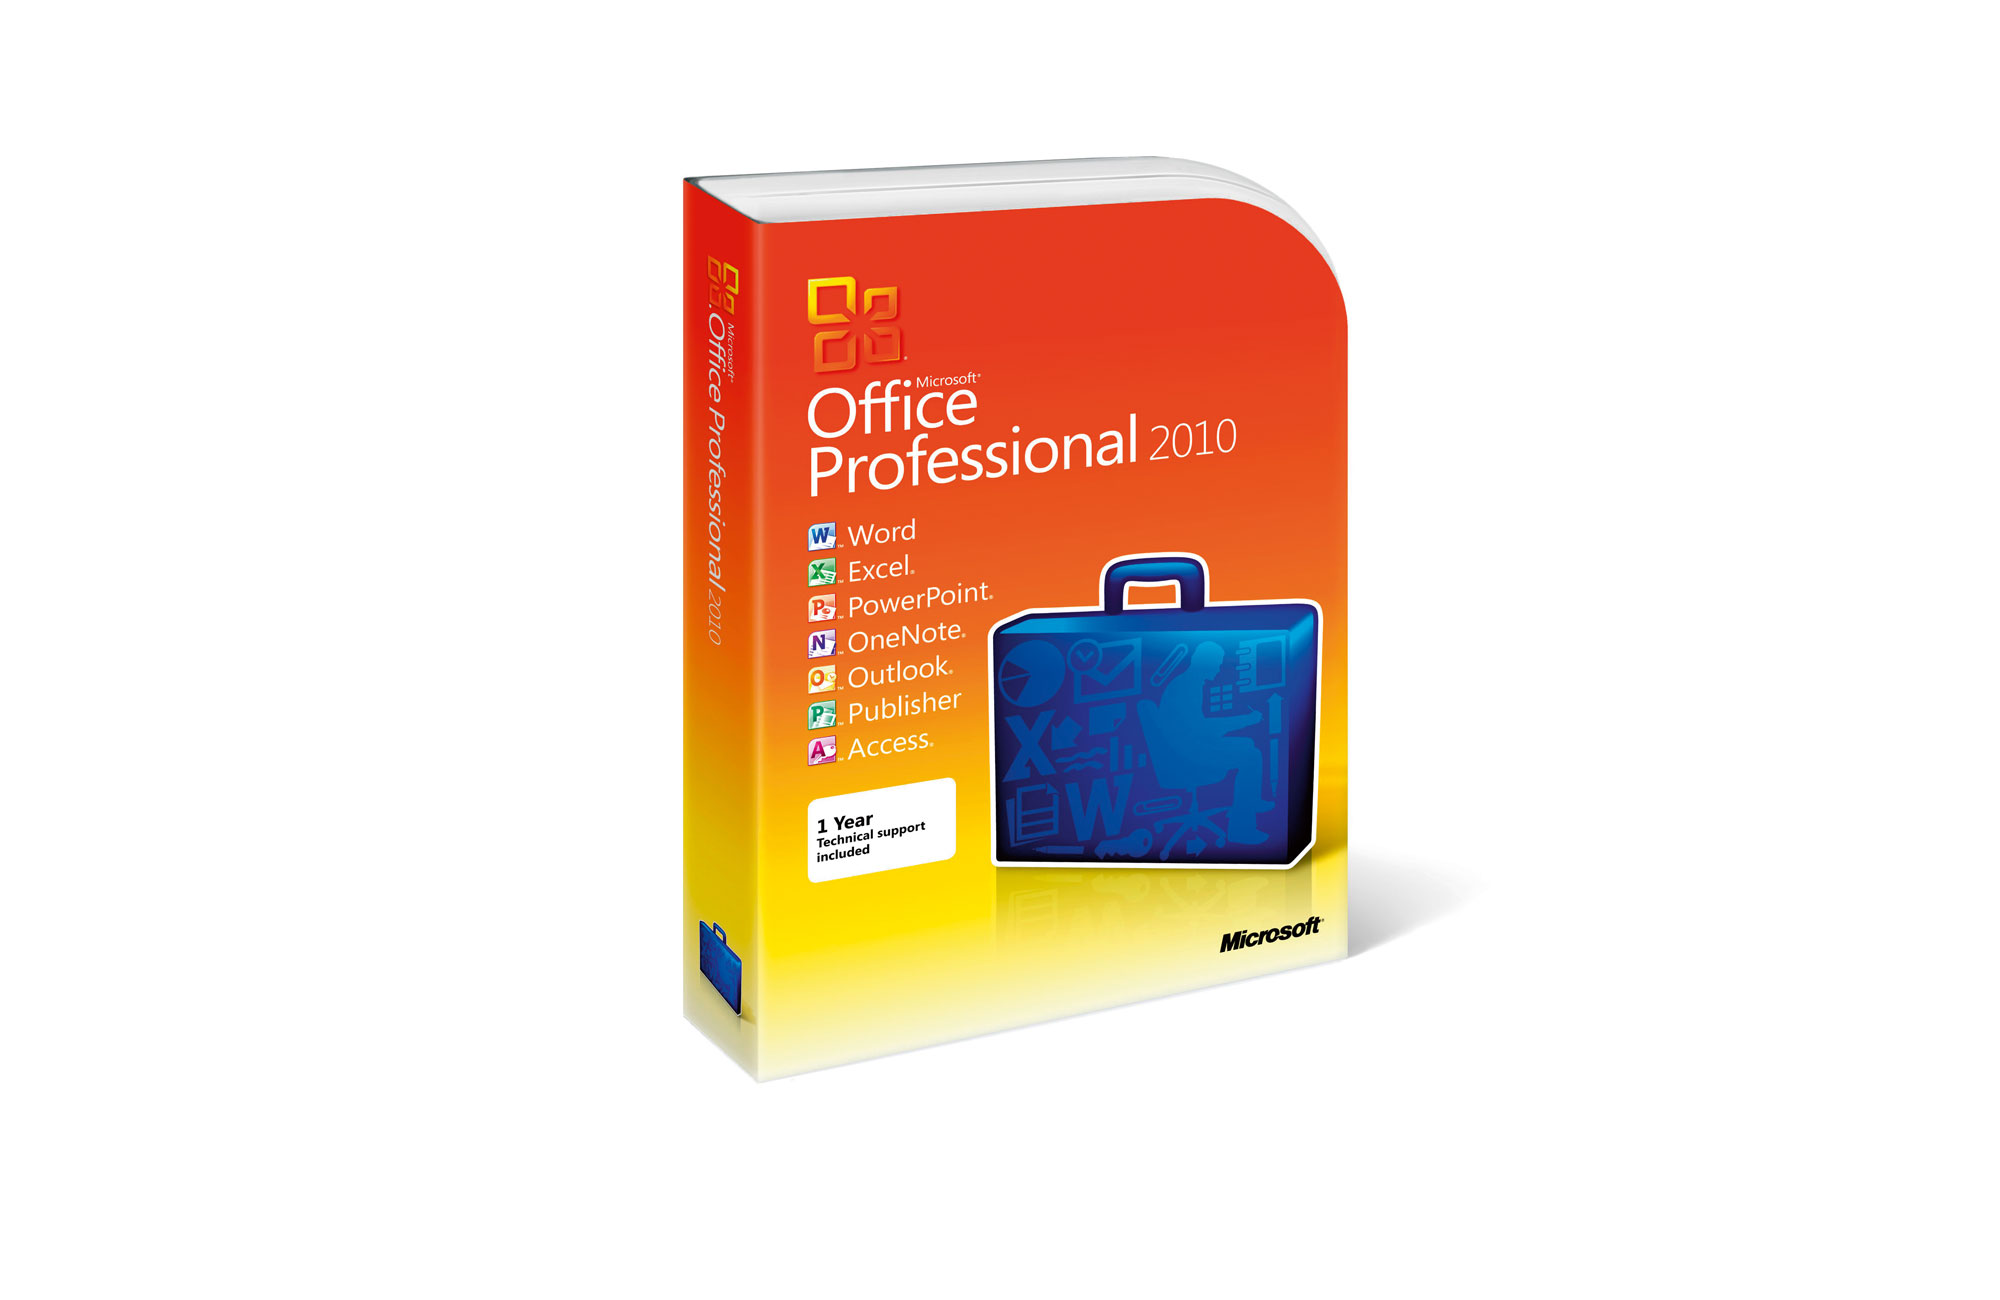 Microsoft Office 2010 - Alt om DATA, Datatid TechLife